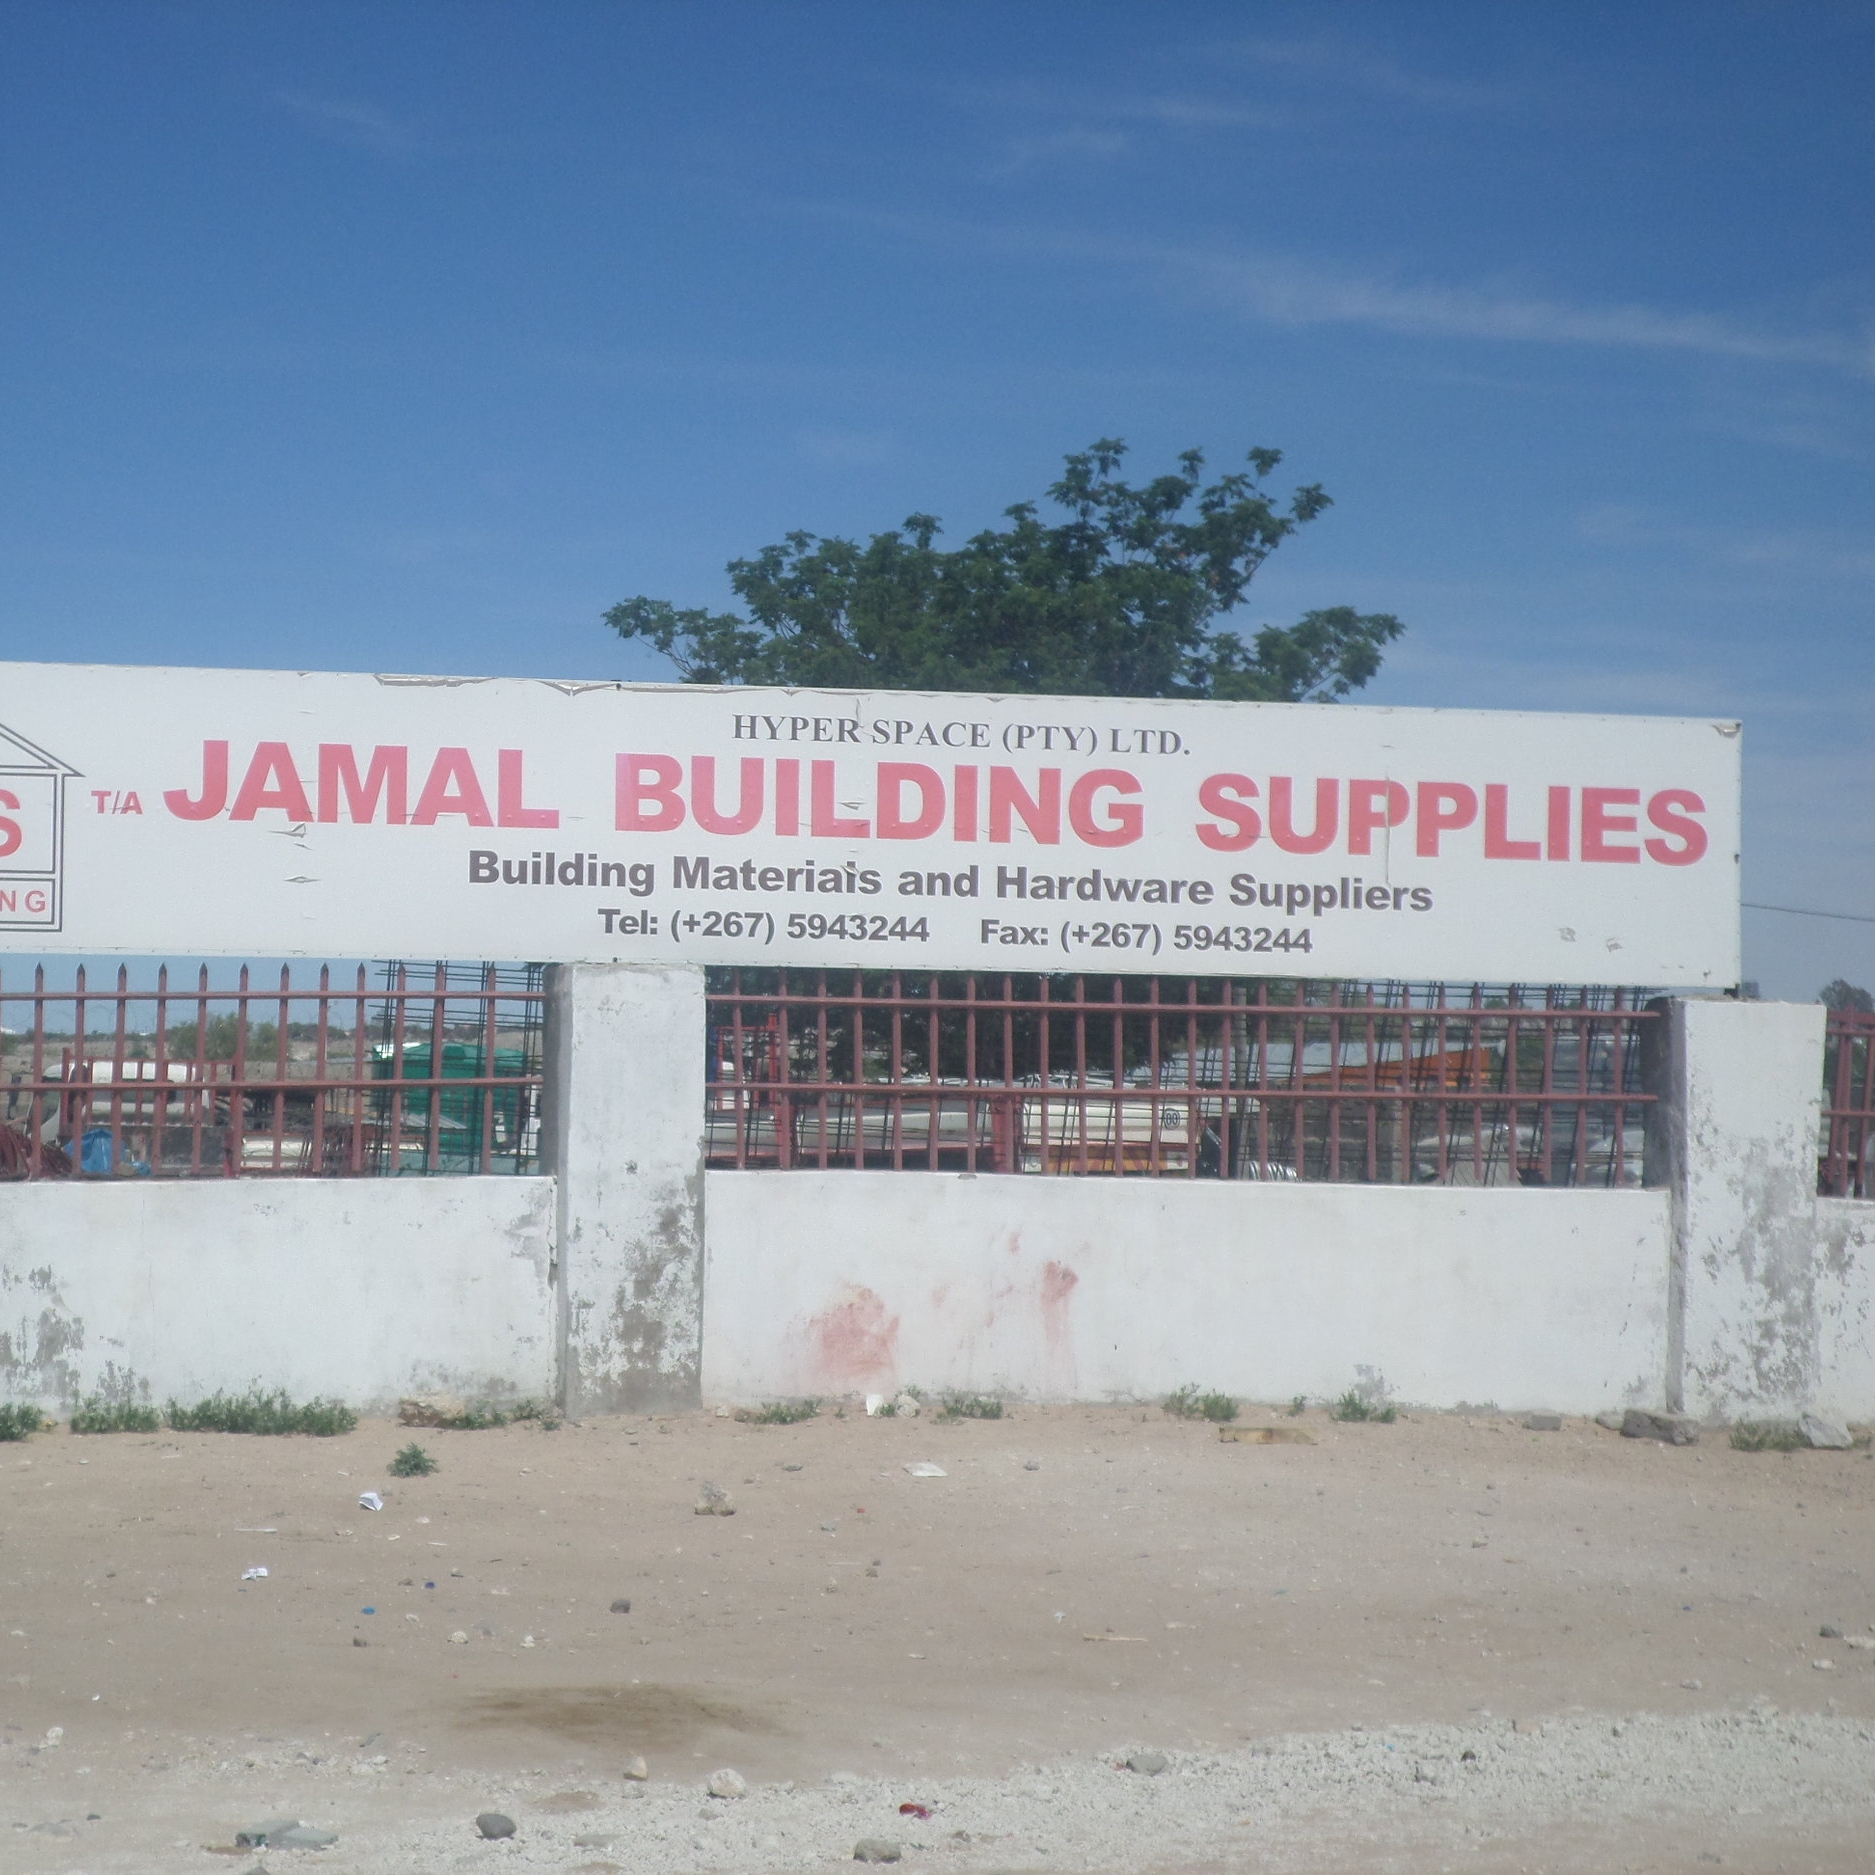 Jamal Building Supplies Hyper Space (PTY) Ltd - Service Description∙ Selling hardware, building materialsOpening Hours:Monday - Friday: 08.00 -17:00Saturday: 08:00 13:00Sunday: -Directions:Modimo WardContact: Mr. Bashir📞 (+267) 59 43 244✎ www.jamal.co.bw